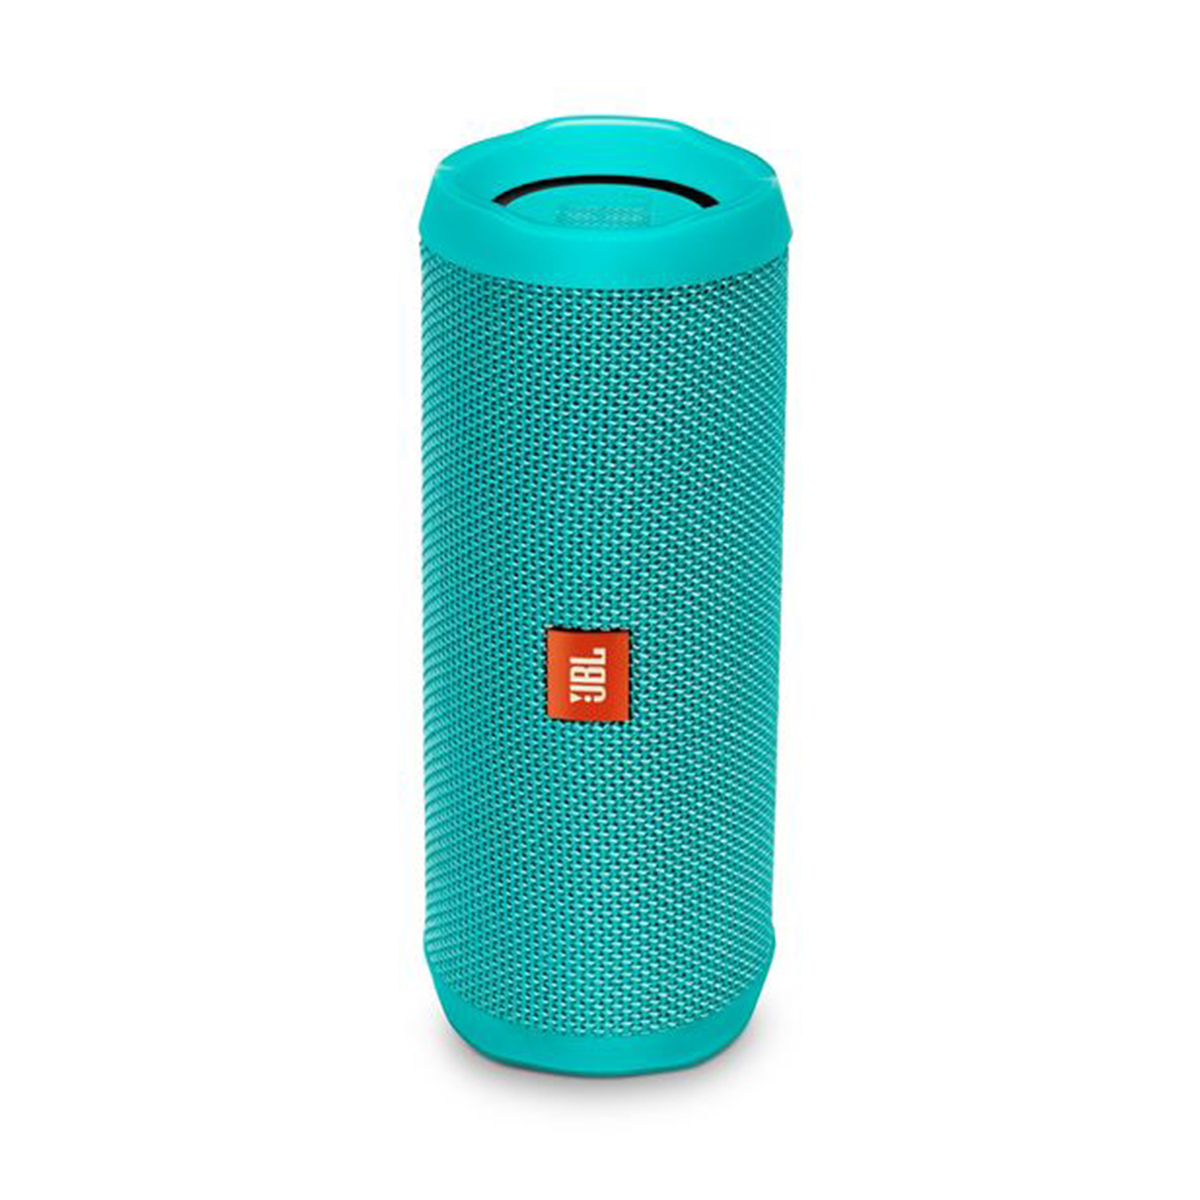 JBL Flip 5 Bluetooth Speaker - TEAL